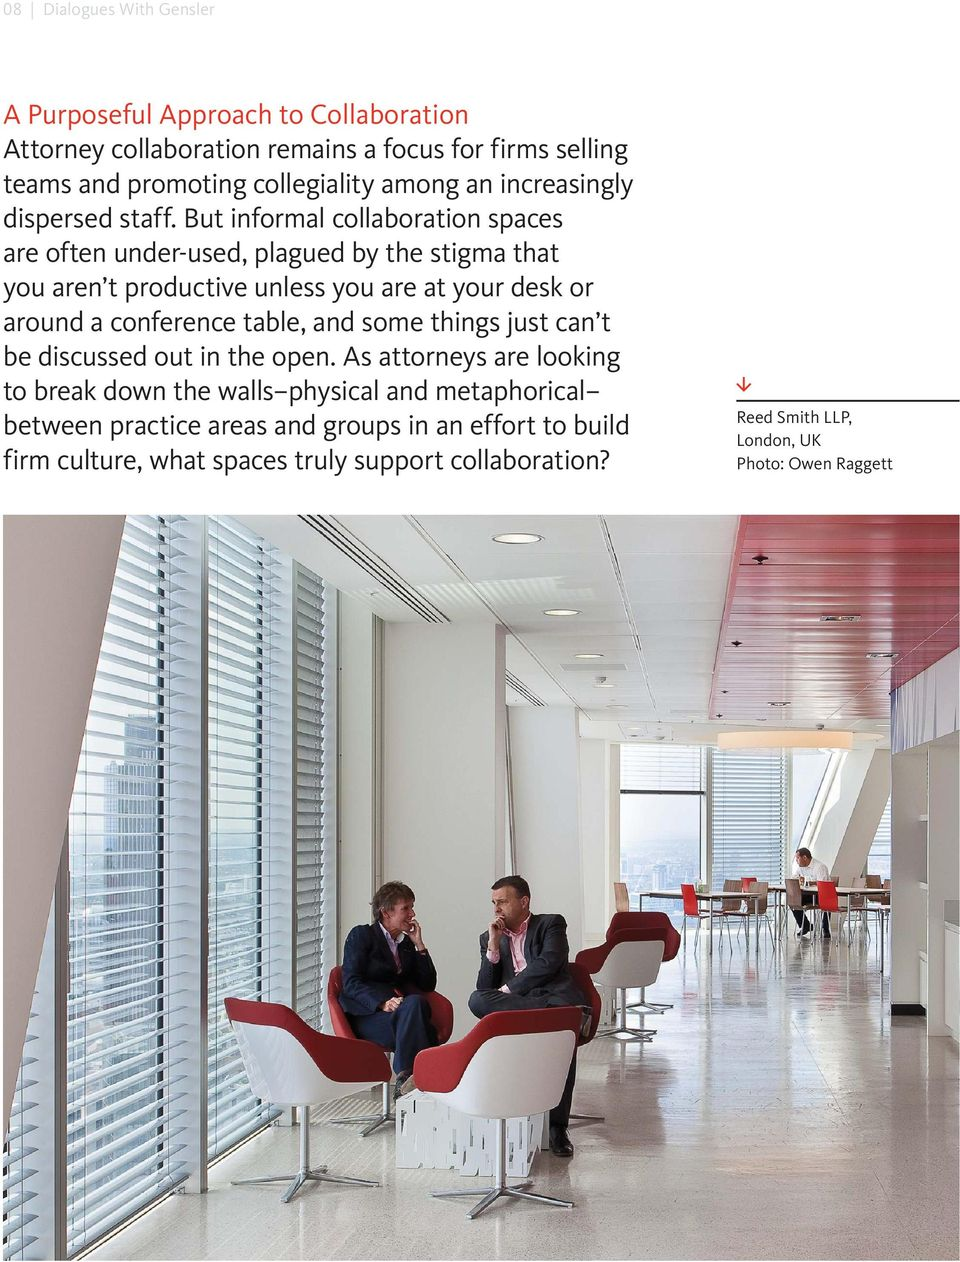 But informal collaboration spaces are often under-used, plagued by the stigma that you aren t productive unless you are at your desk or around a conference